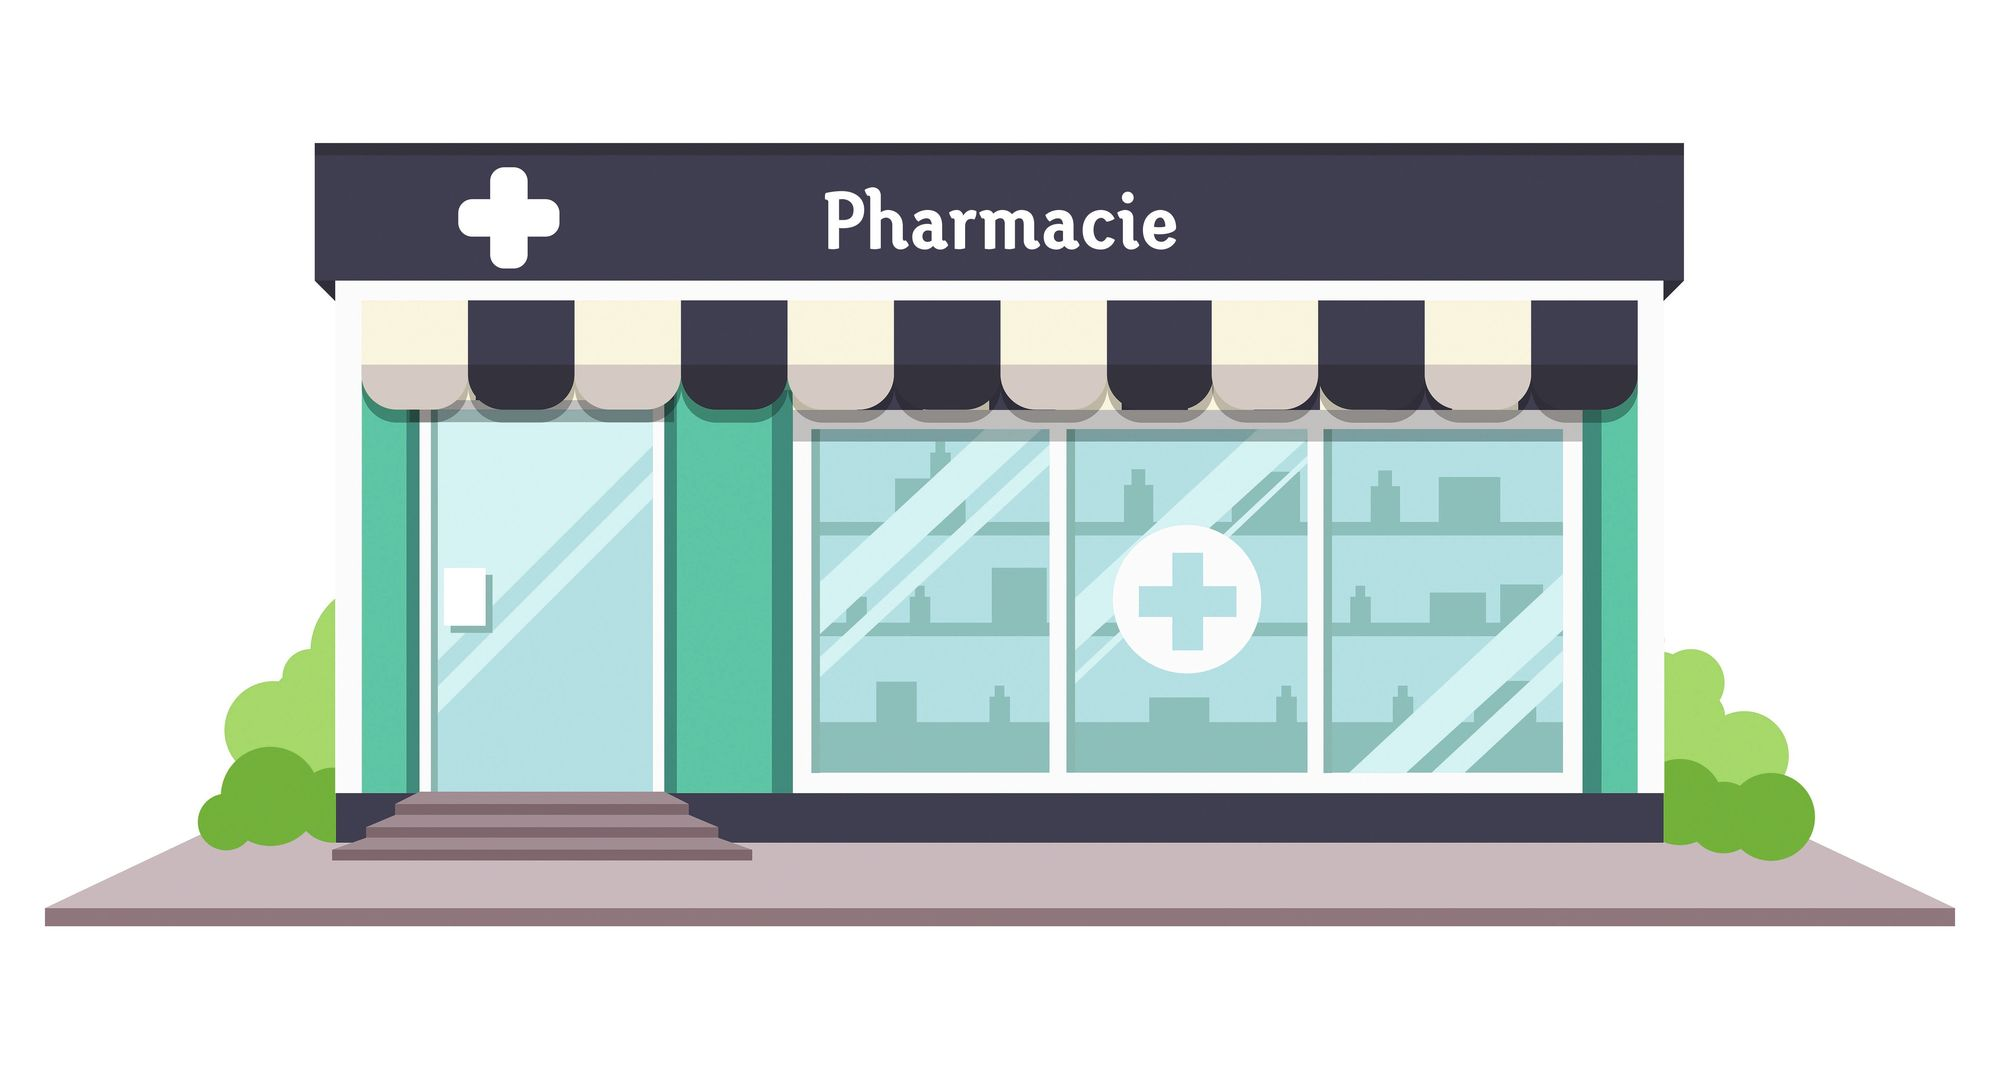 Pharmacie genially